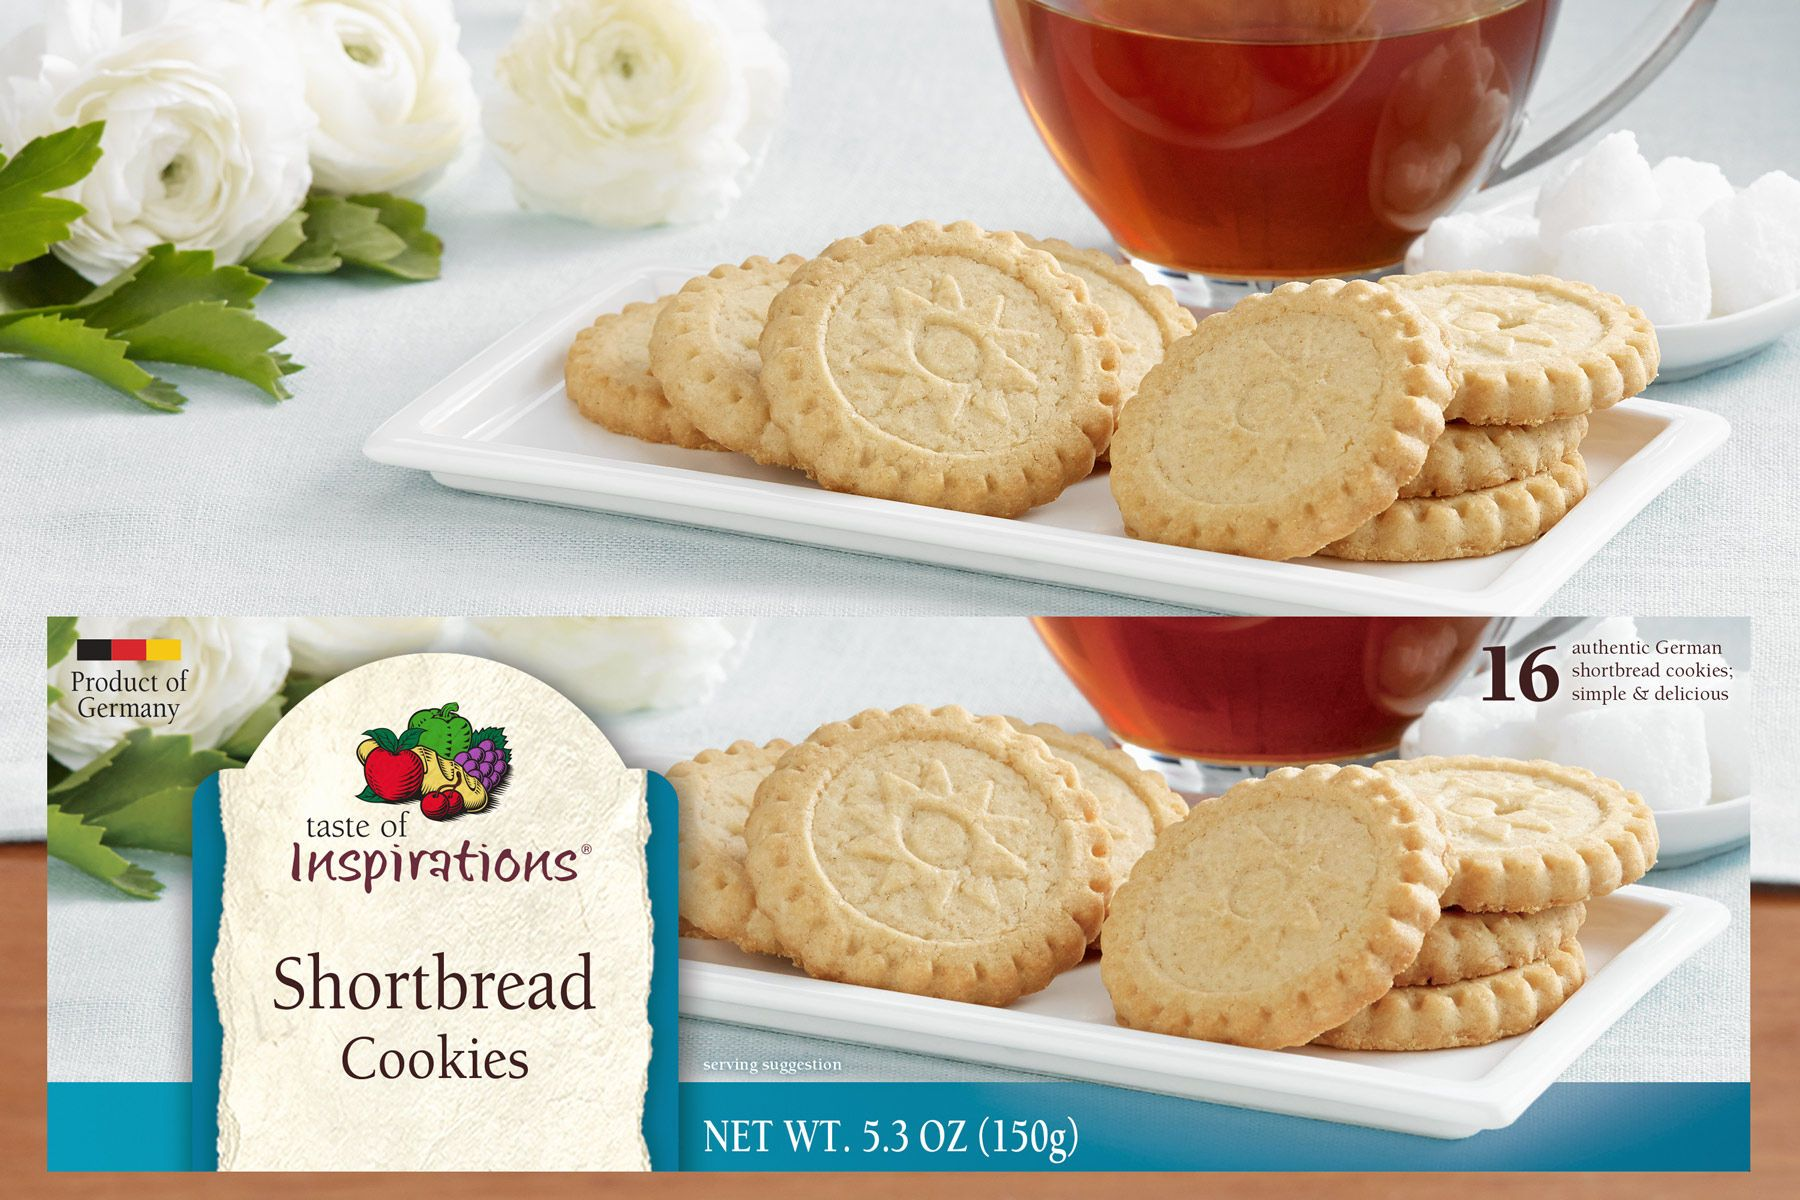 Taste of Inspirations Shortbread Cookies for DelHaize America